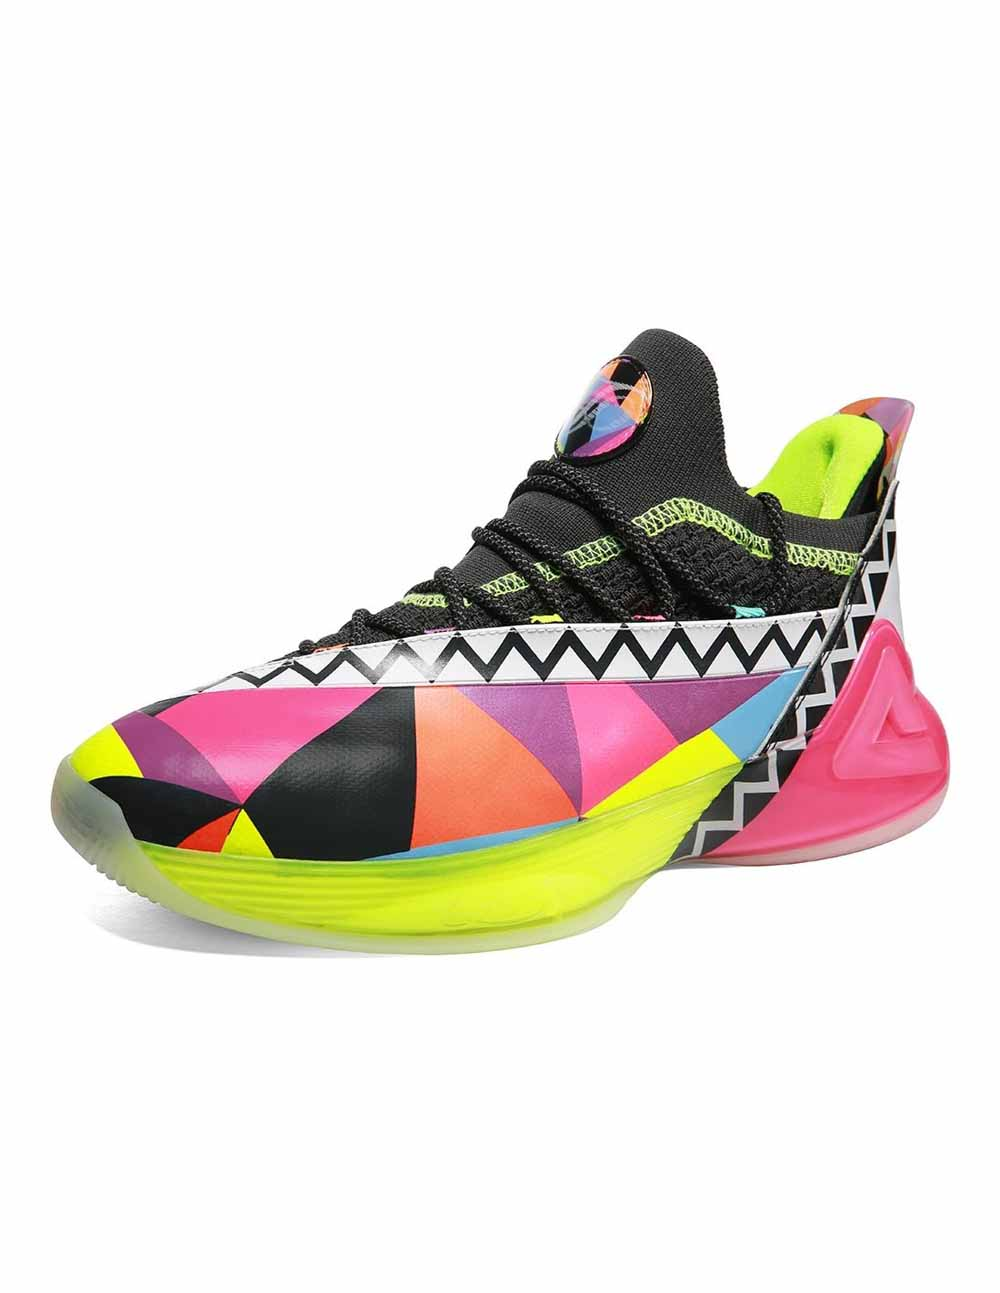 PEAK Basketballschuh Tony Parker TP VII